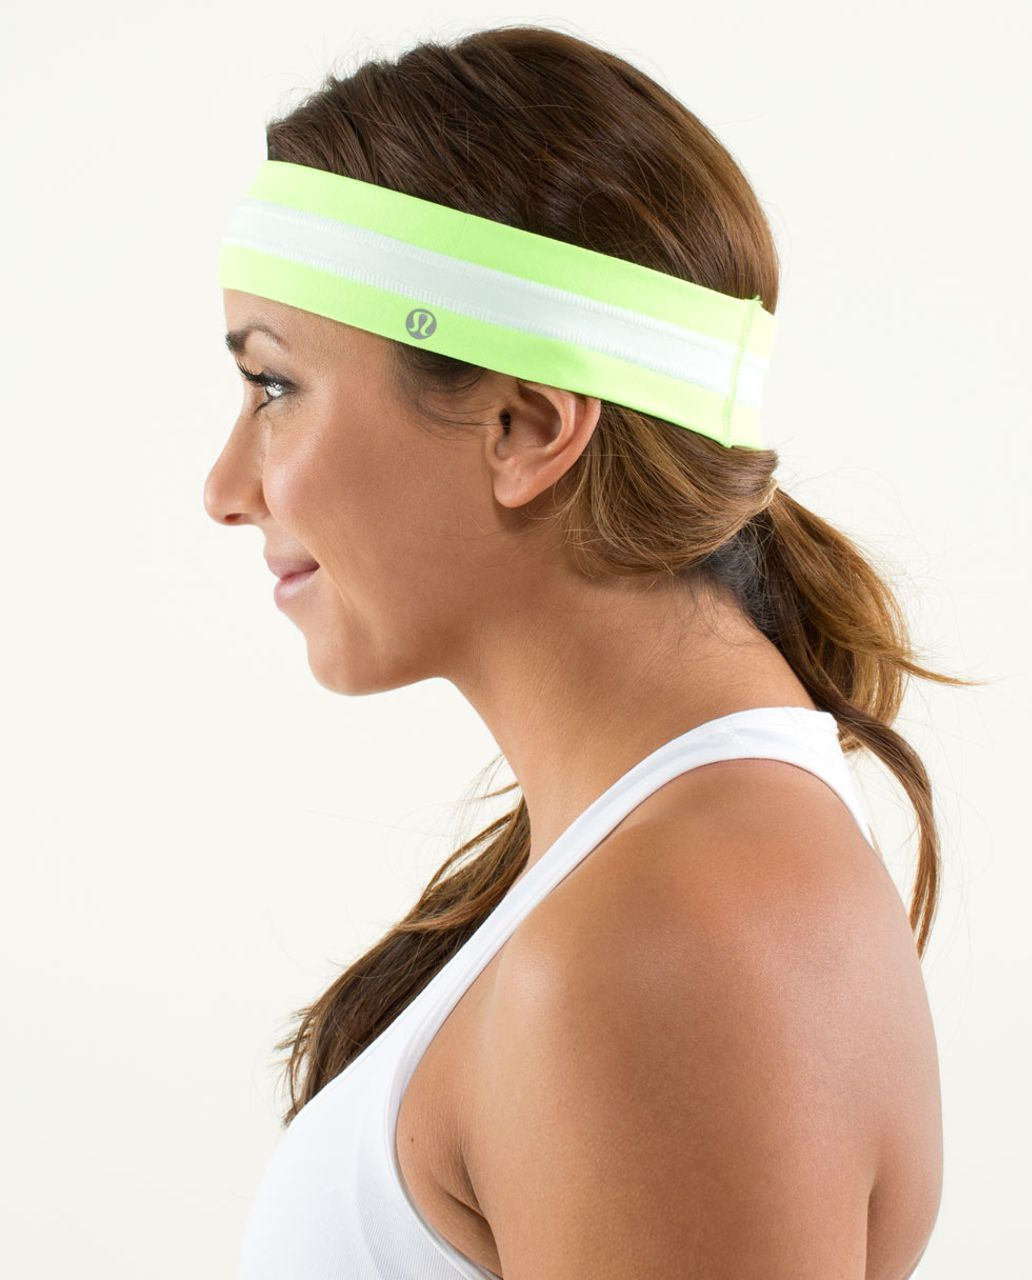 Lululemon Fly Away Tamer Headband - Zippy Green / White